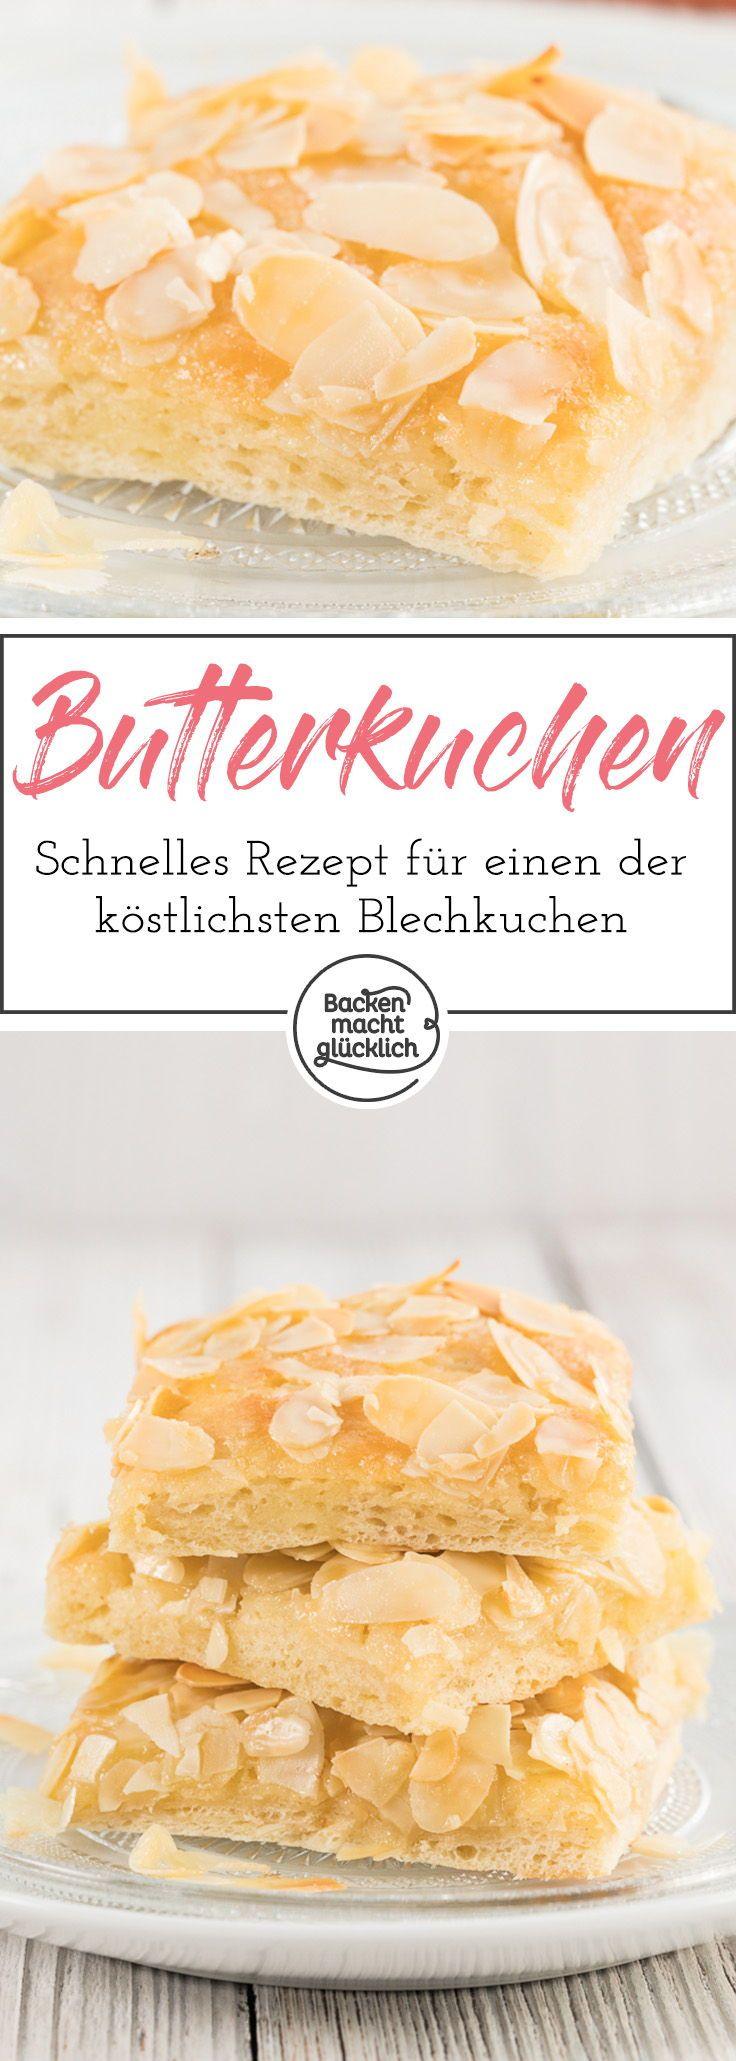 butterkuchen mit mandeln rezept backmischung. Black Bedroom Furniture Sets. Home Design Ideas